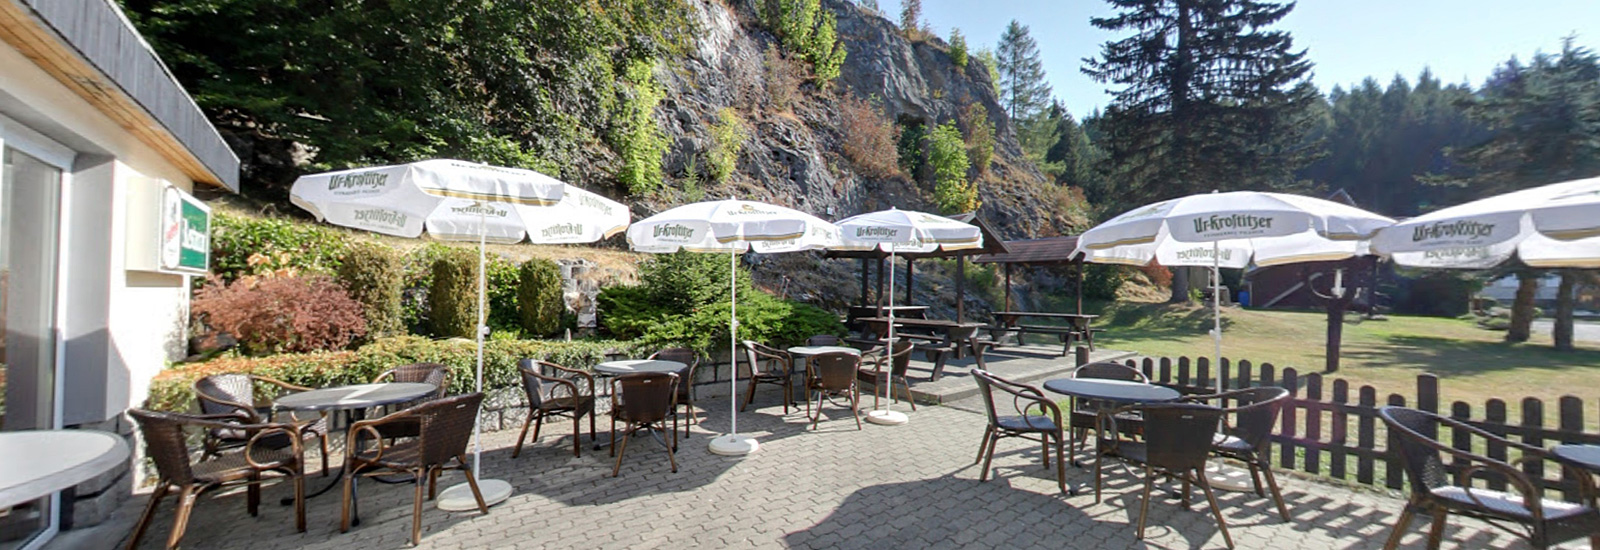 Motiv: Restaurant Am Felsen